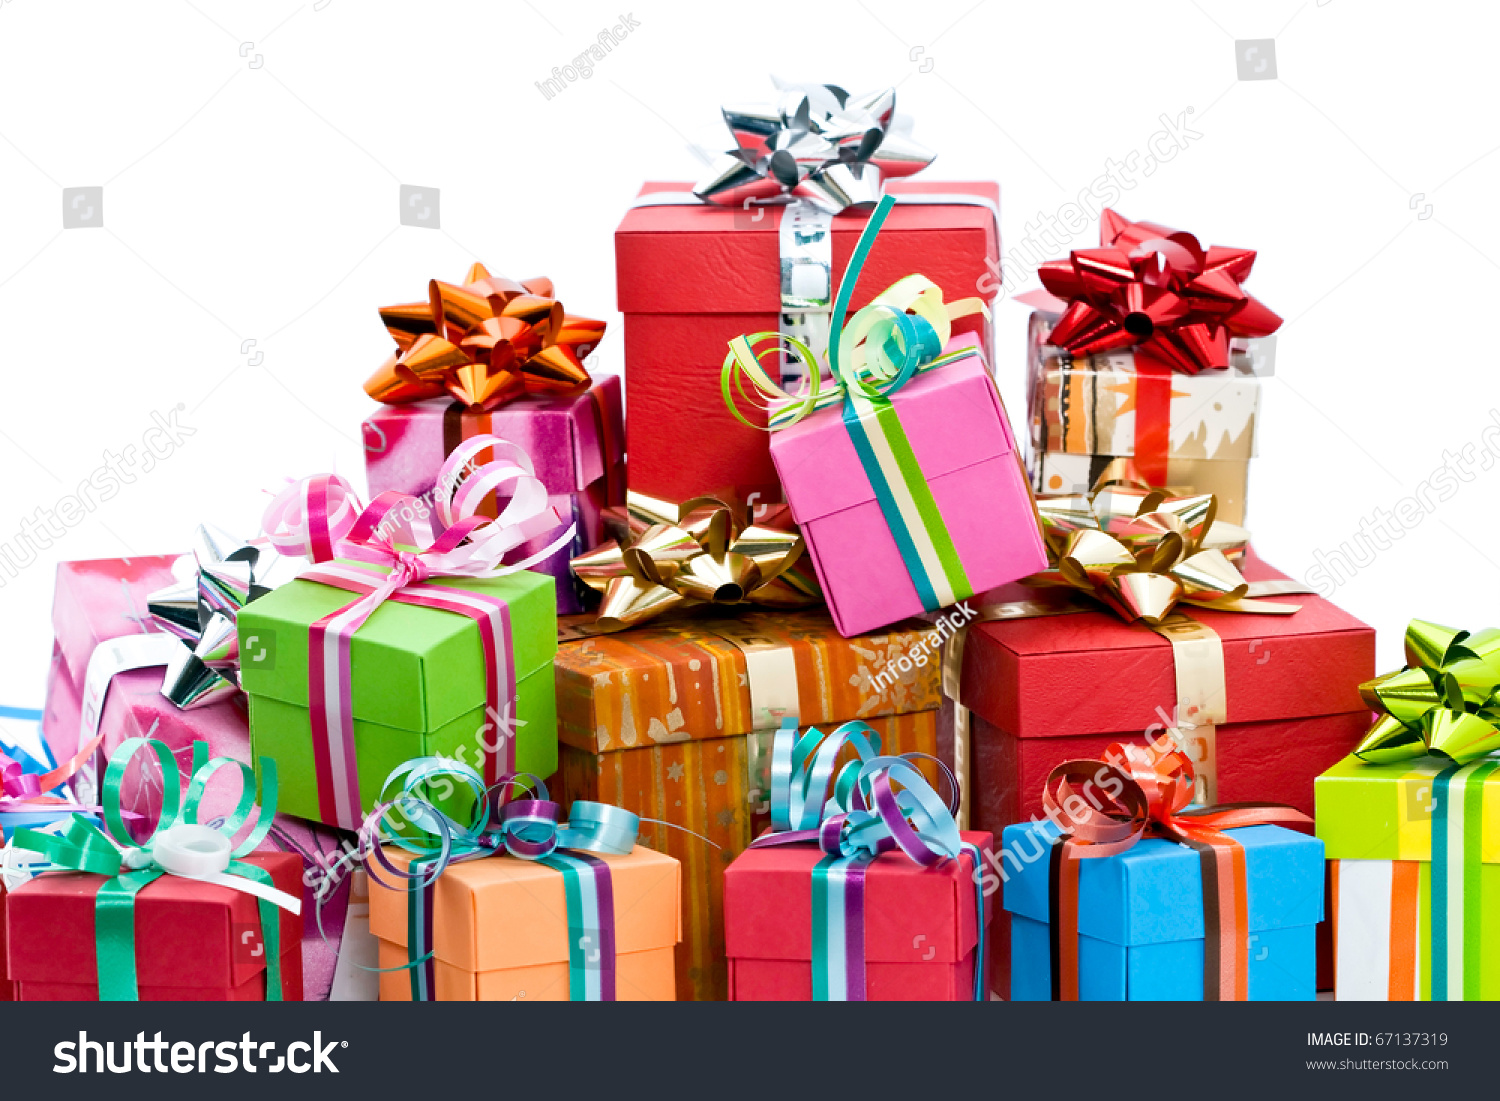 Pile of colorful christmas presents isolated